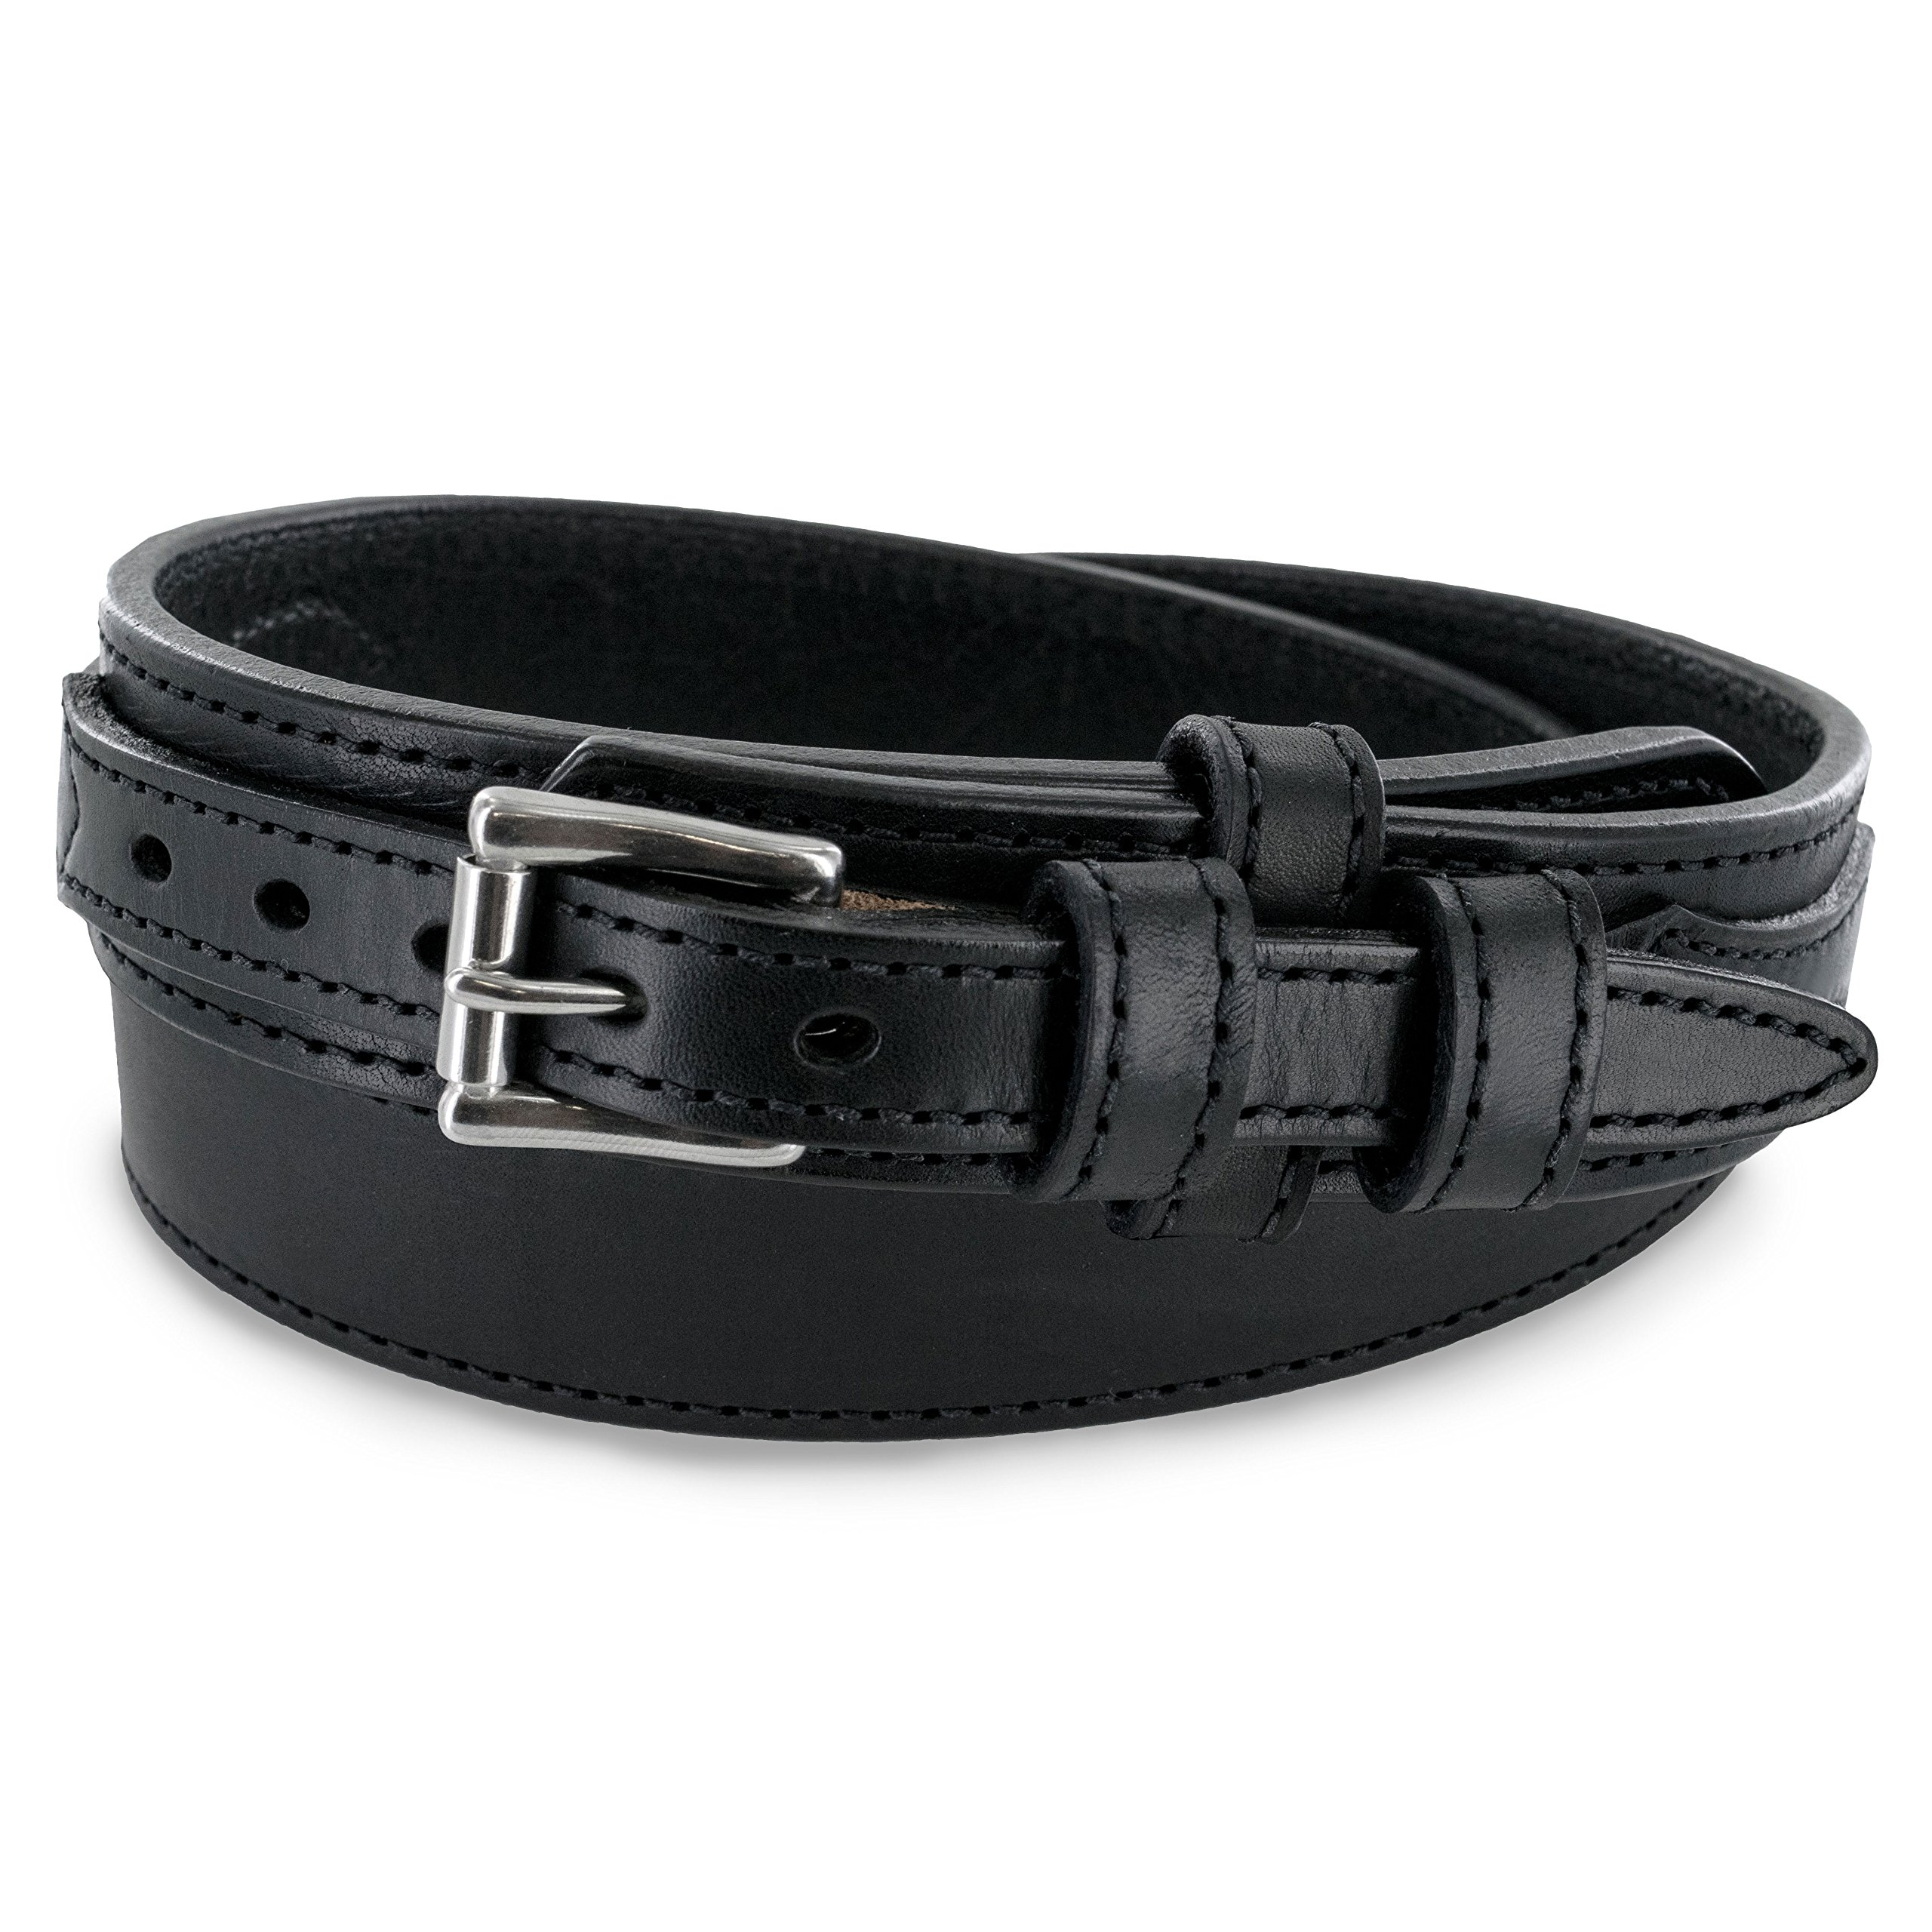 Hanks A3100 Ranger Belt 14oz USA Made - Black - Size 38